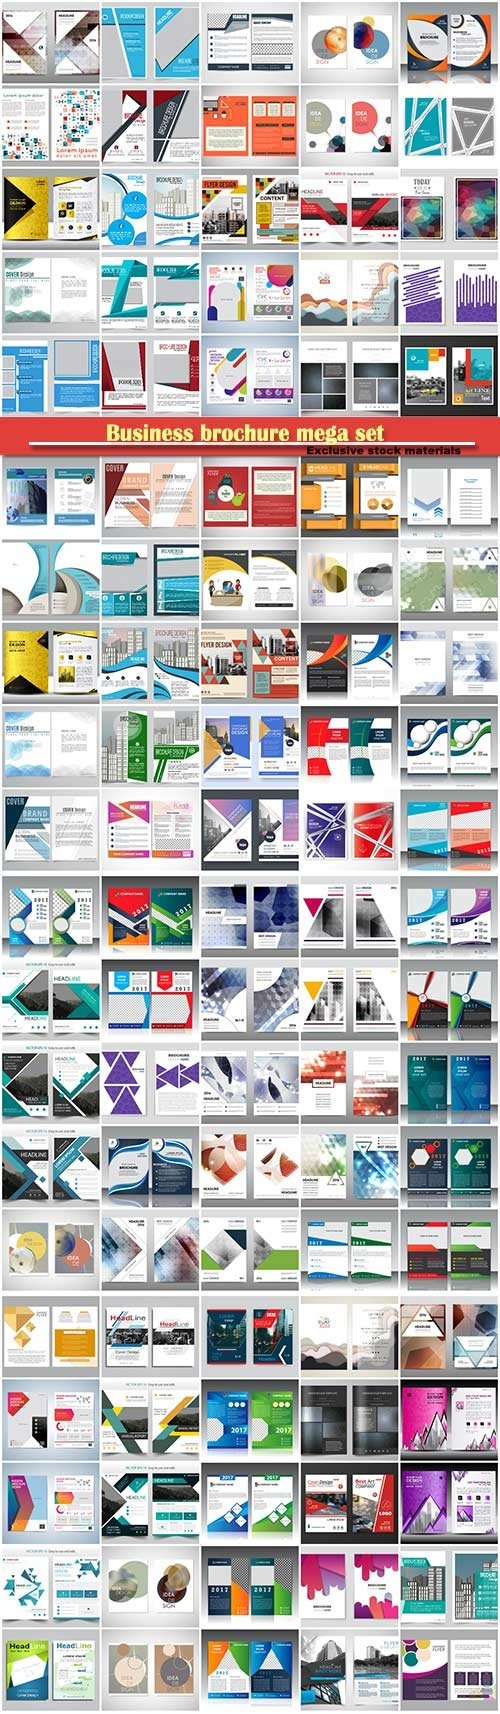 Business brochure mega set # 3